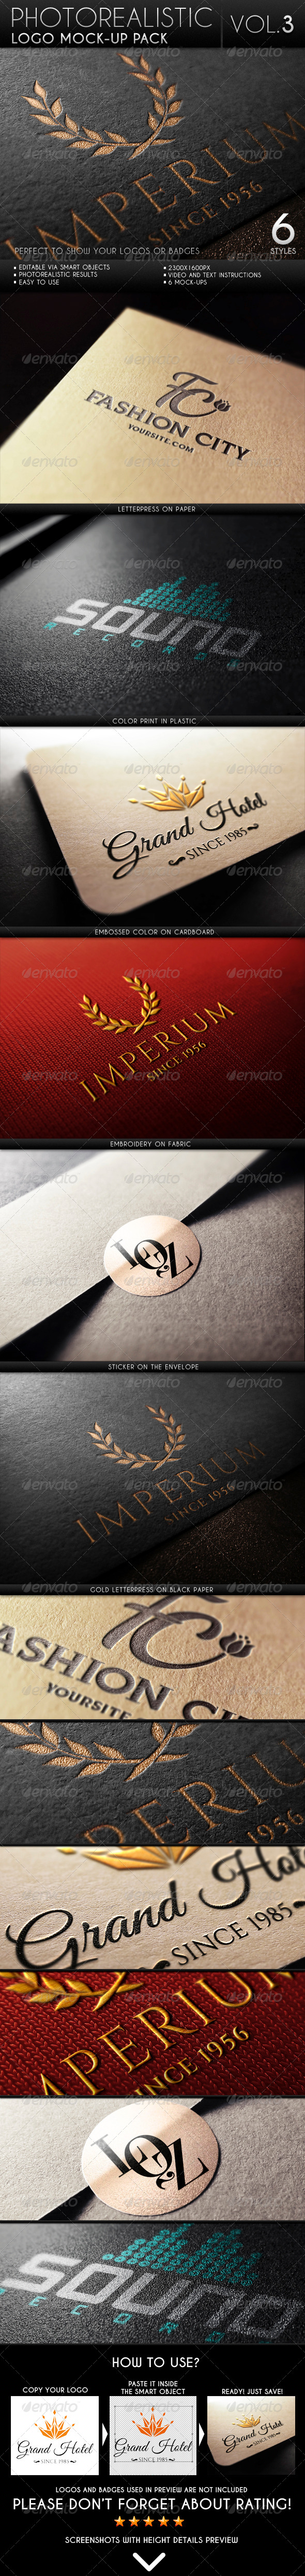 GraphicRiver Photorealistic Logo Mock-Up Pack Vol.3 6627640